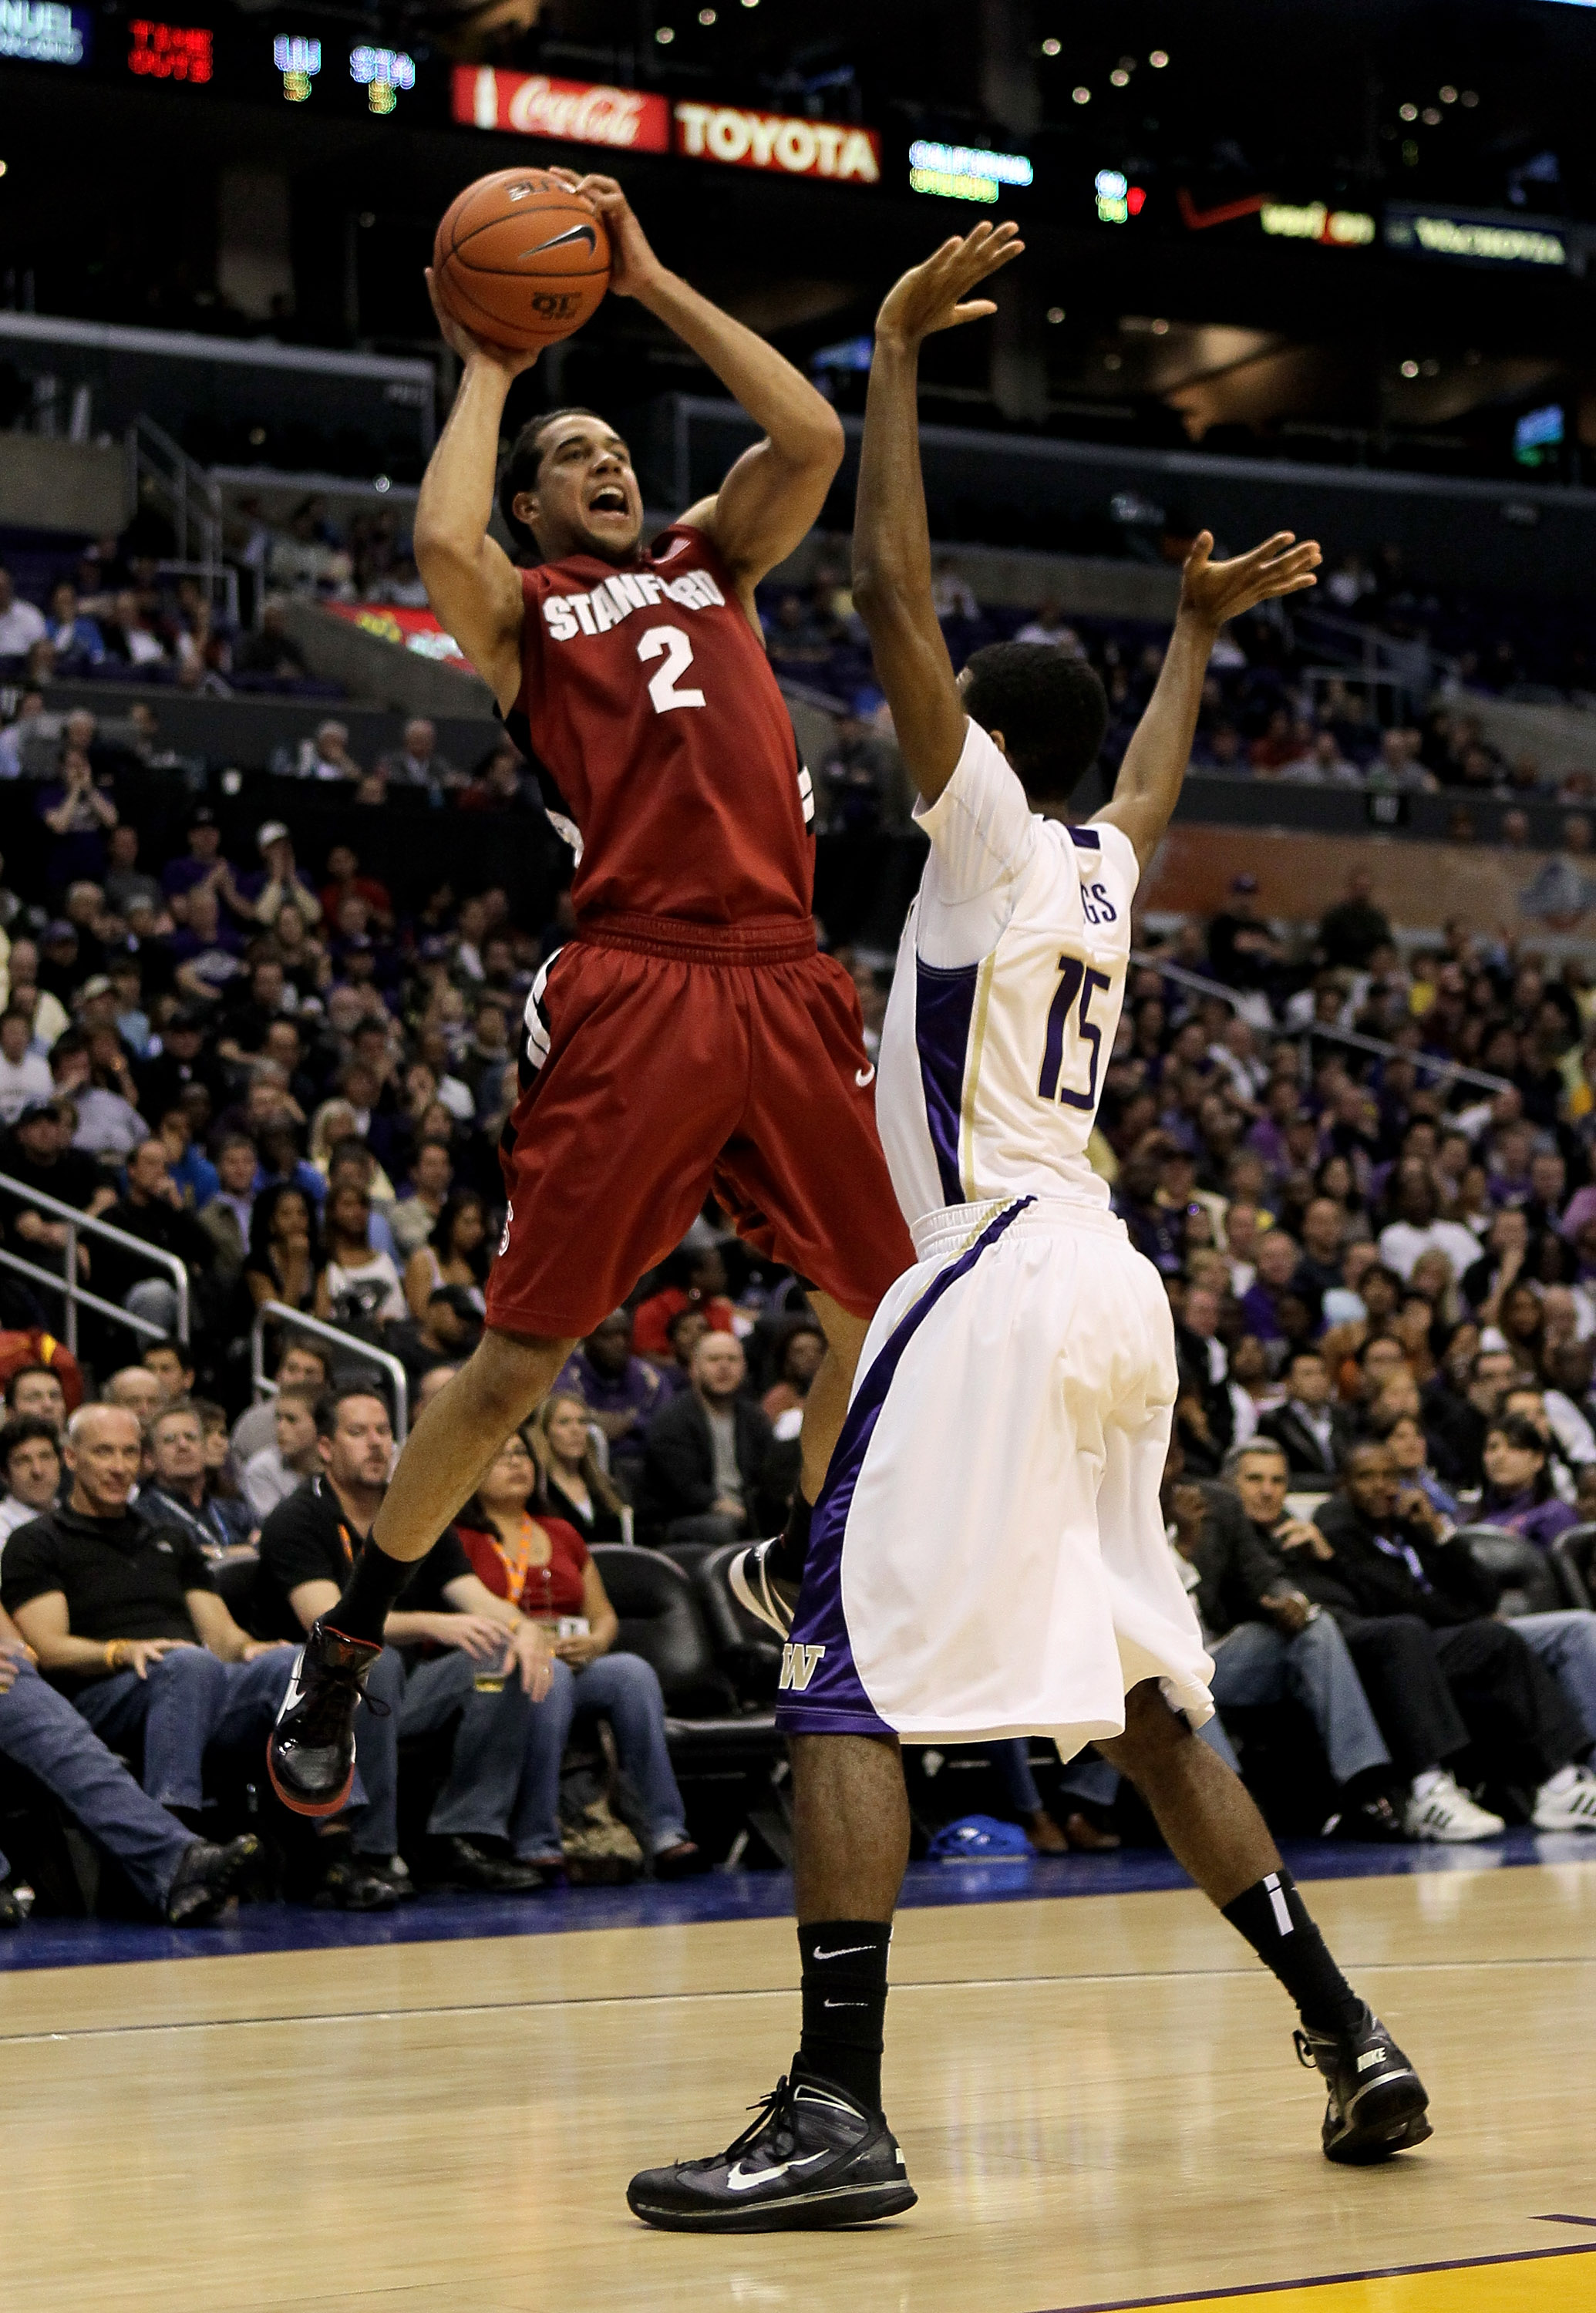 LOS ANGELES, CA - MARCH 12:  Landry Fields #2 of the Stanford Cardinal shoots over Scott Suggs #15 of the Washington Huskies during the semifinals of the Pac-10 Basketball Tournament at Staples Center on March 12, 2010 in Los Angeles, California.  (Photo